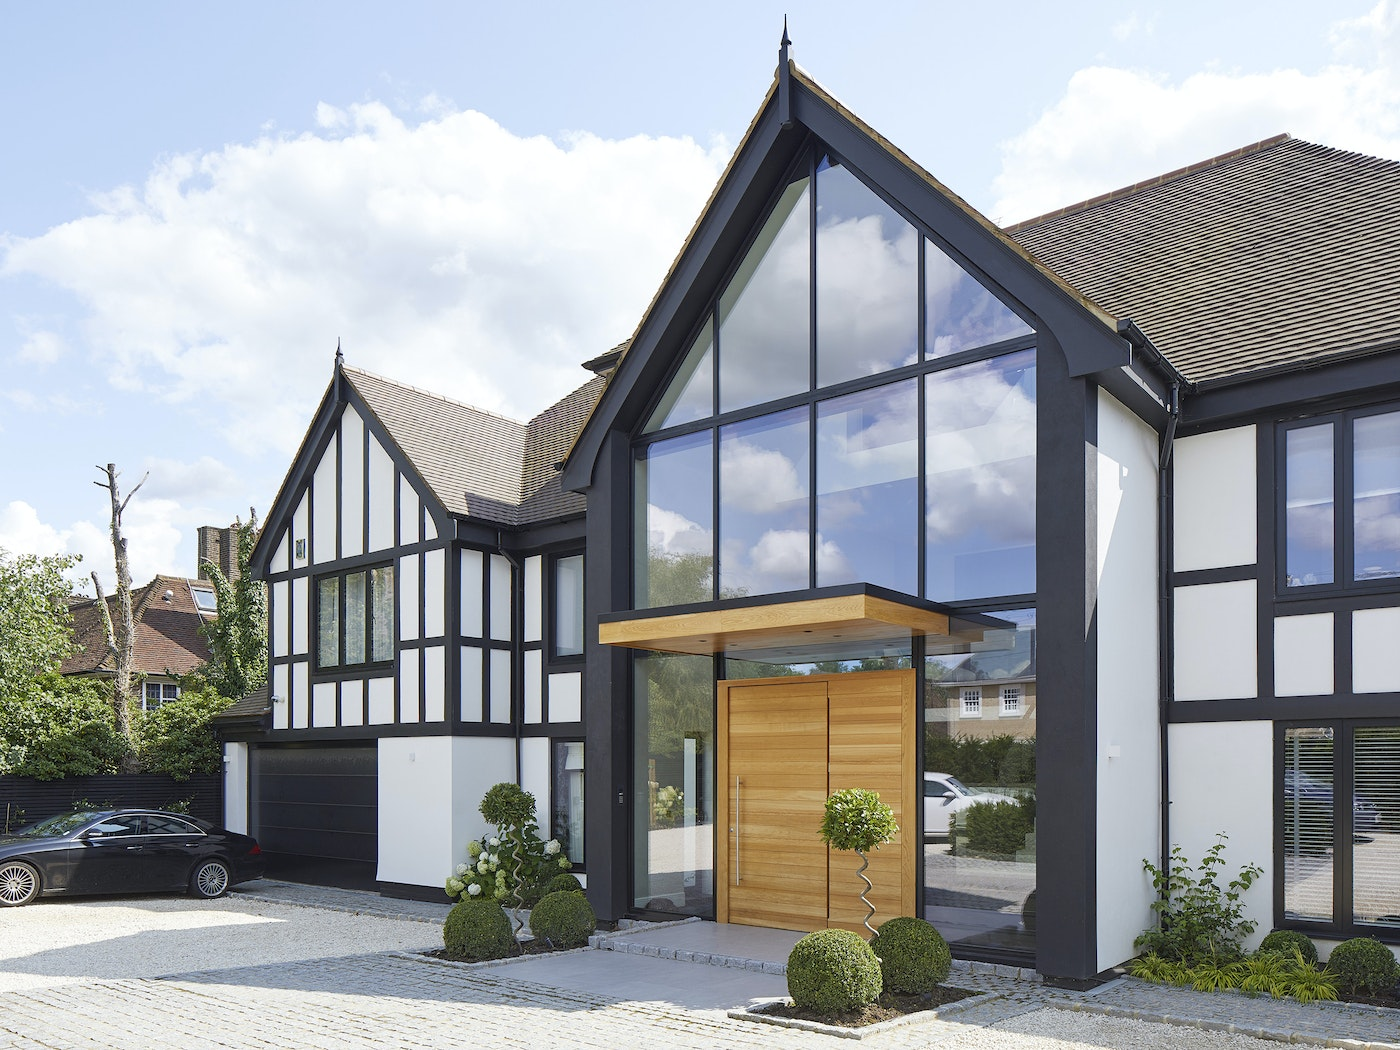 This house is a grand mix of contemporary with traditional styling - the modernity is highlighted by the simple grooved contemporary front door